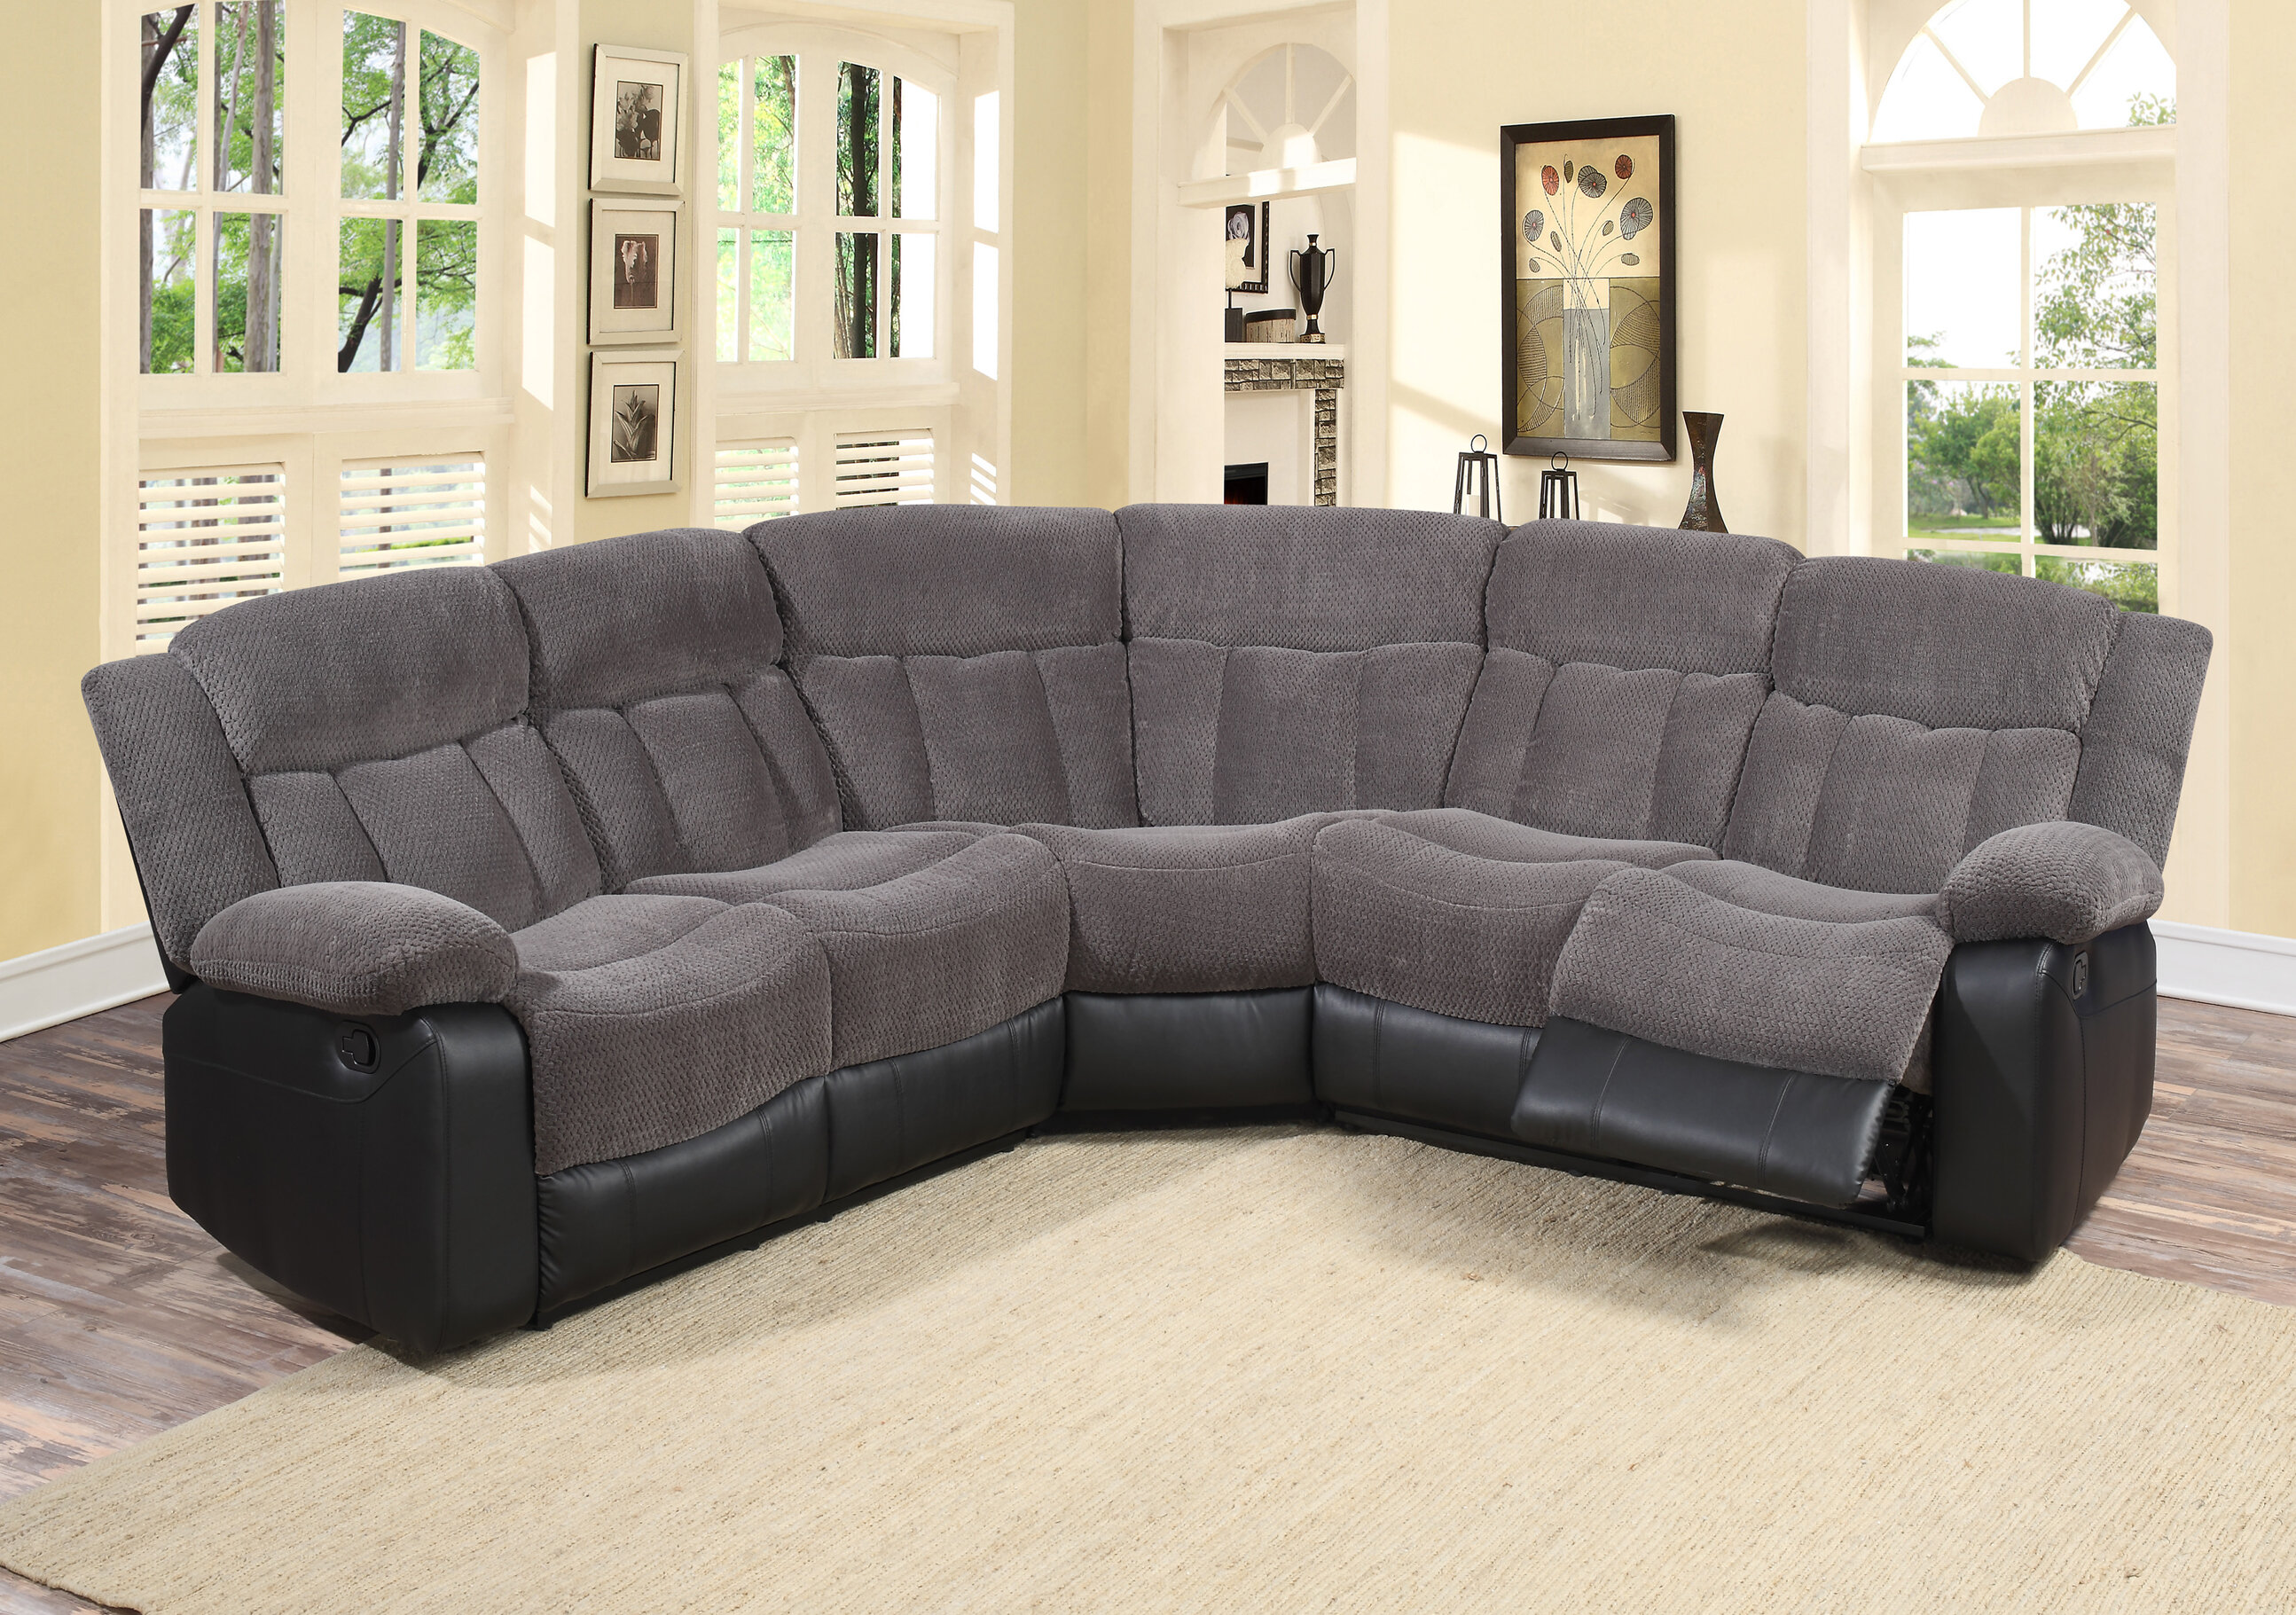 slipcovers cup chaise couch piece with around small tray covers sectionals gray seat comfortable for size loveseat leather holders recliners recliner of sectional and sofa furniture beds ikea corner wrap sofas holder reclining full